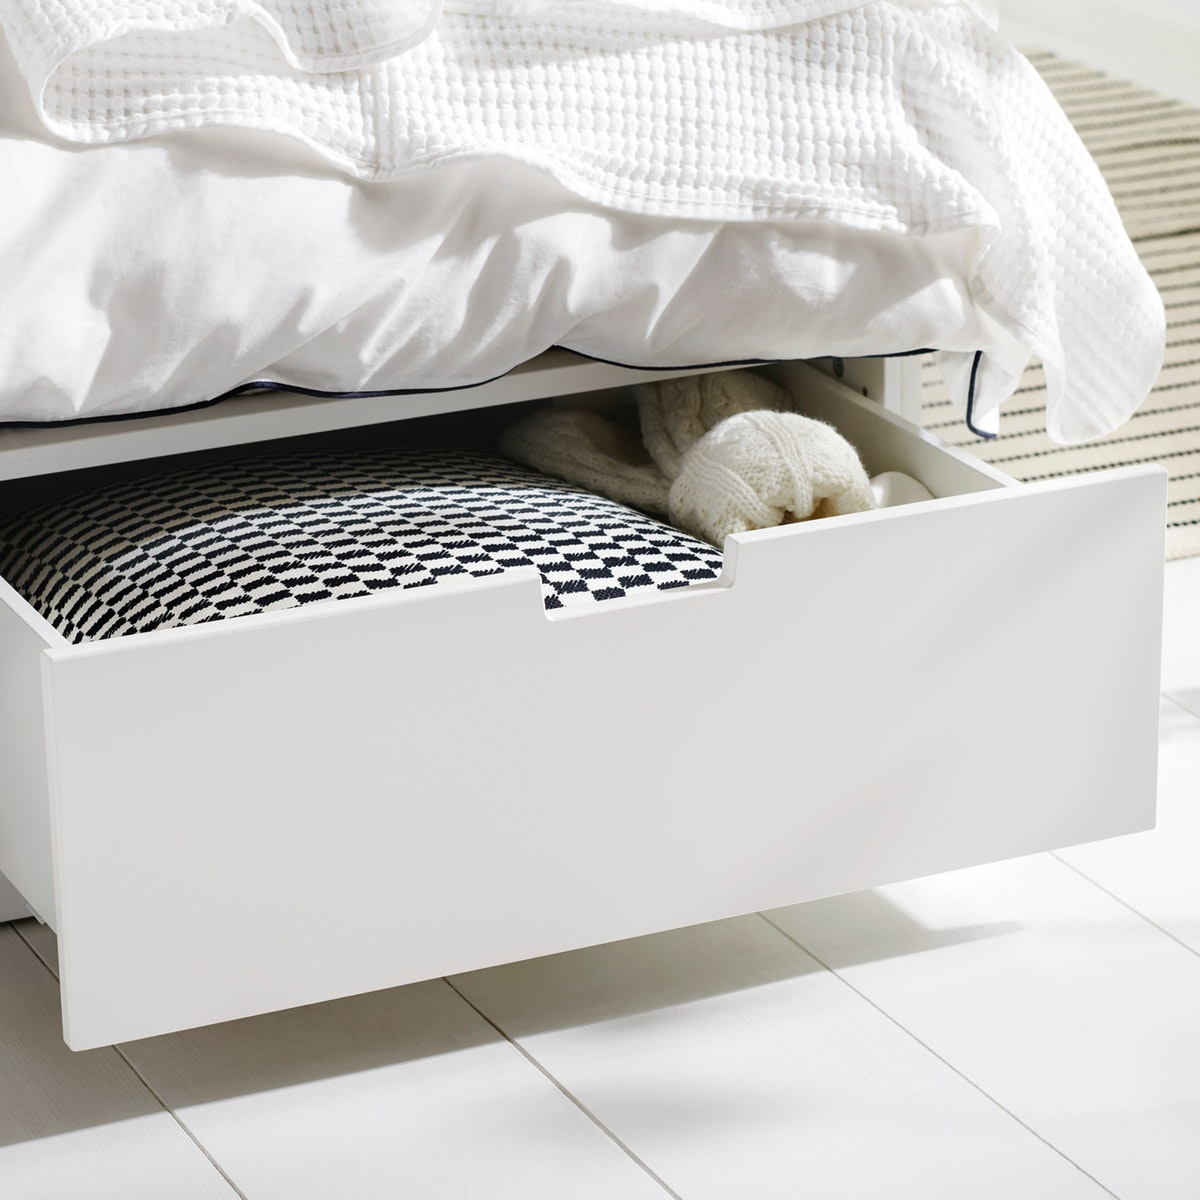 ikea-bed-drawers